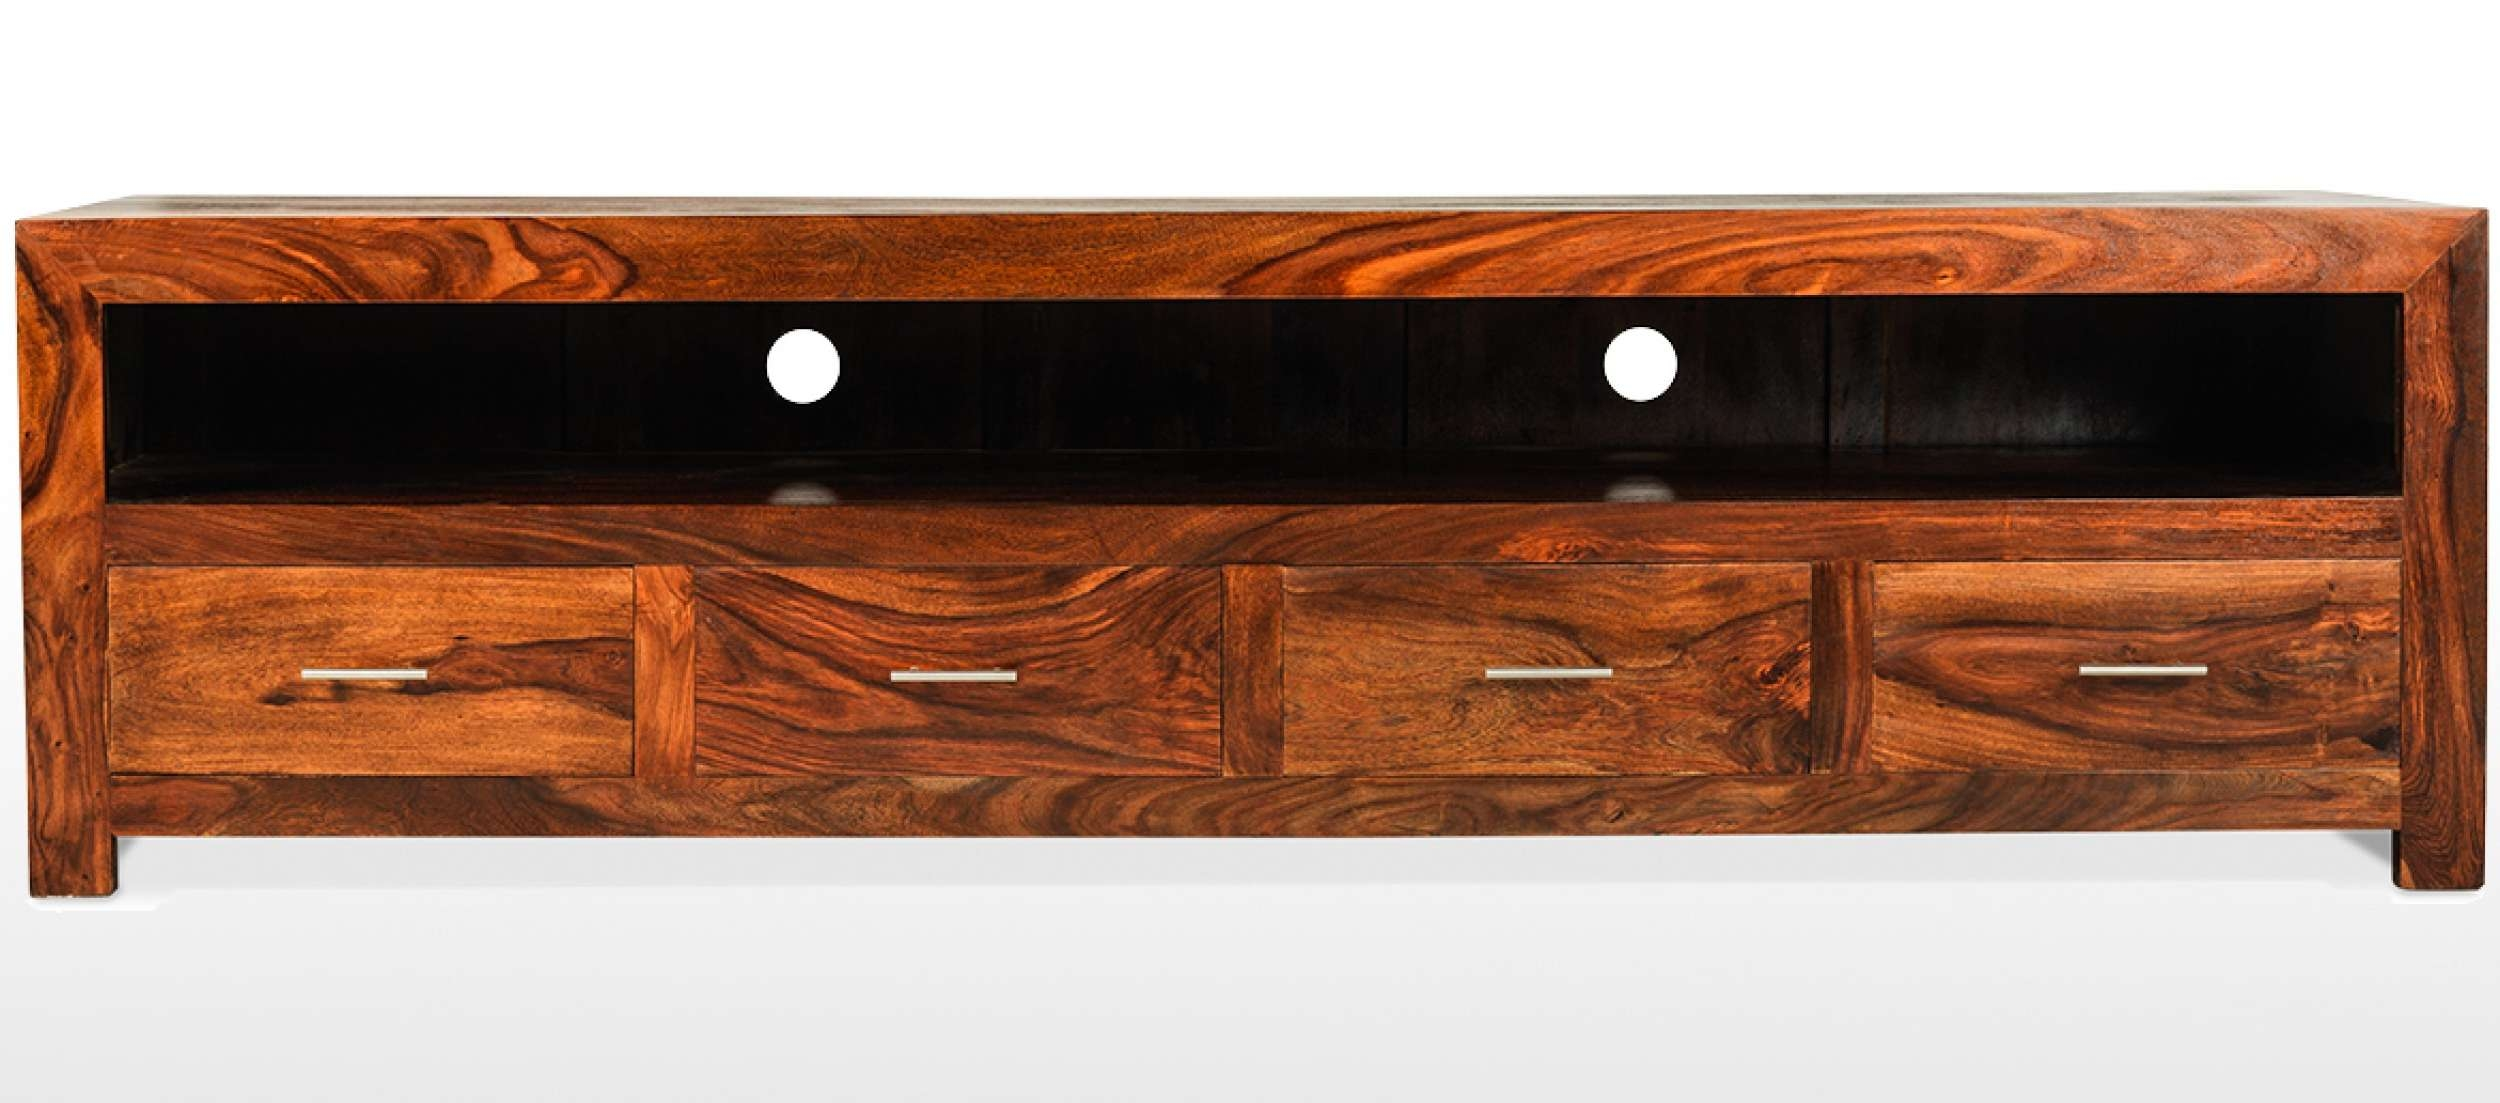 Cube Sheesham Long Plasma Tv Cabinet | Quercus Living Inside Wide Tv Cabinets (View 2 of 20)